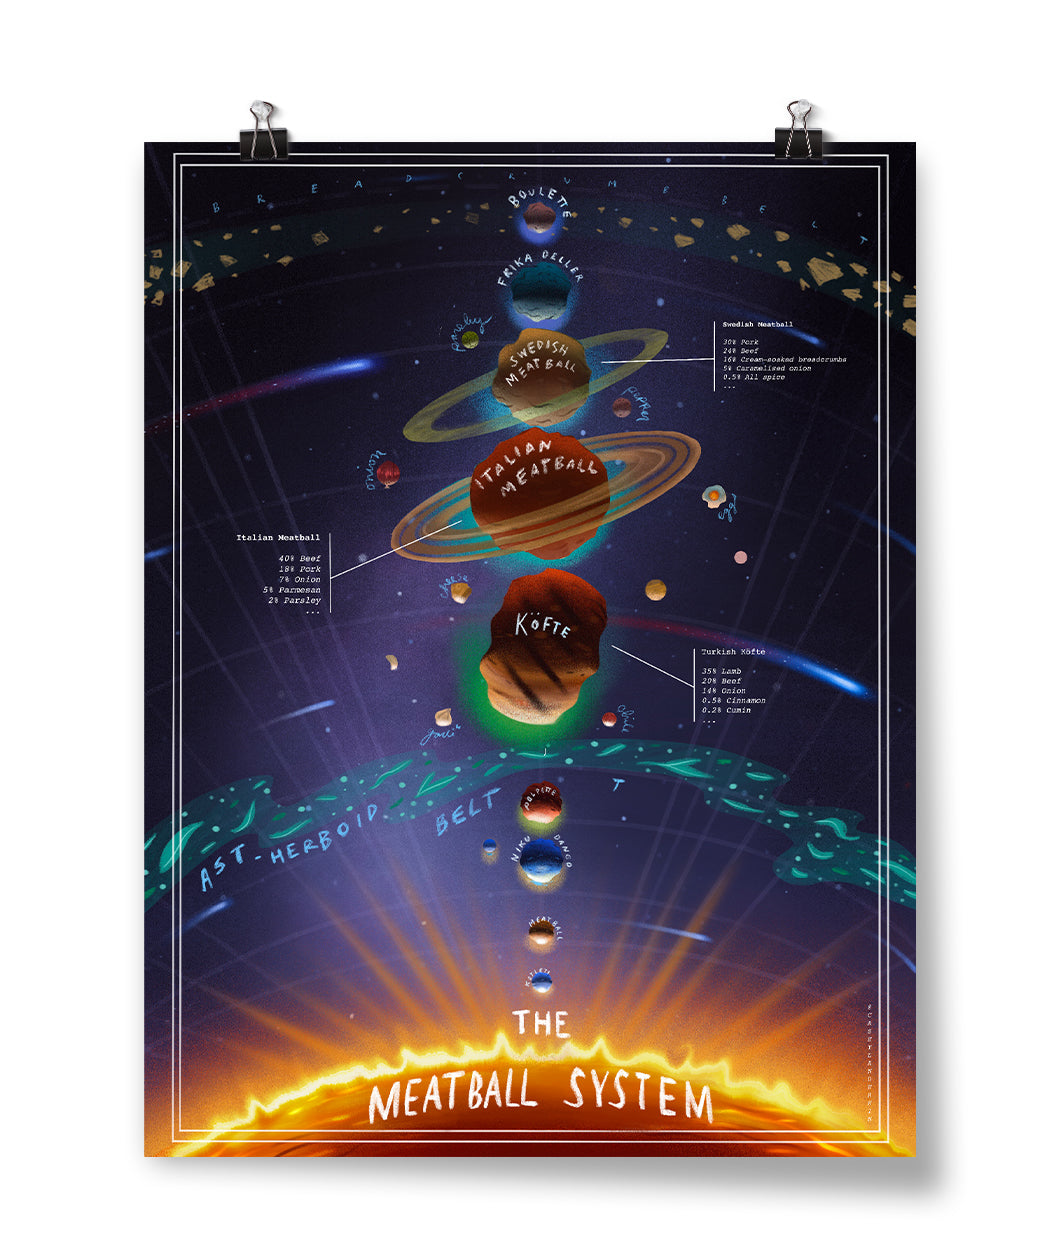 The Meatball System Poster